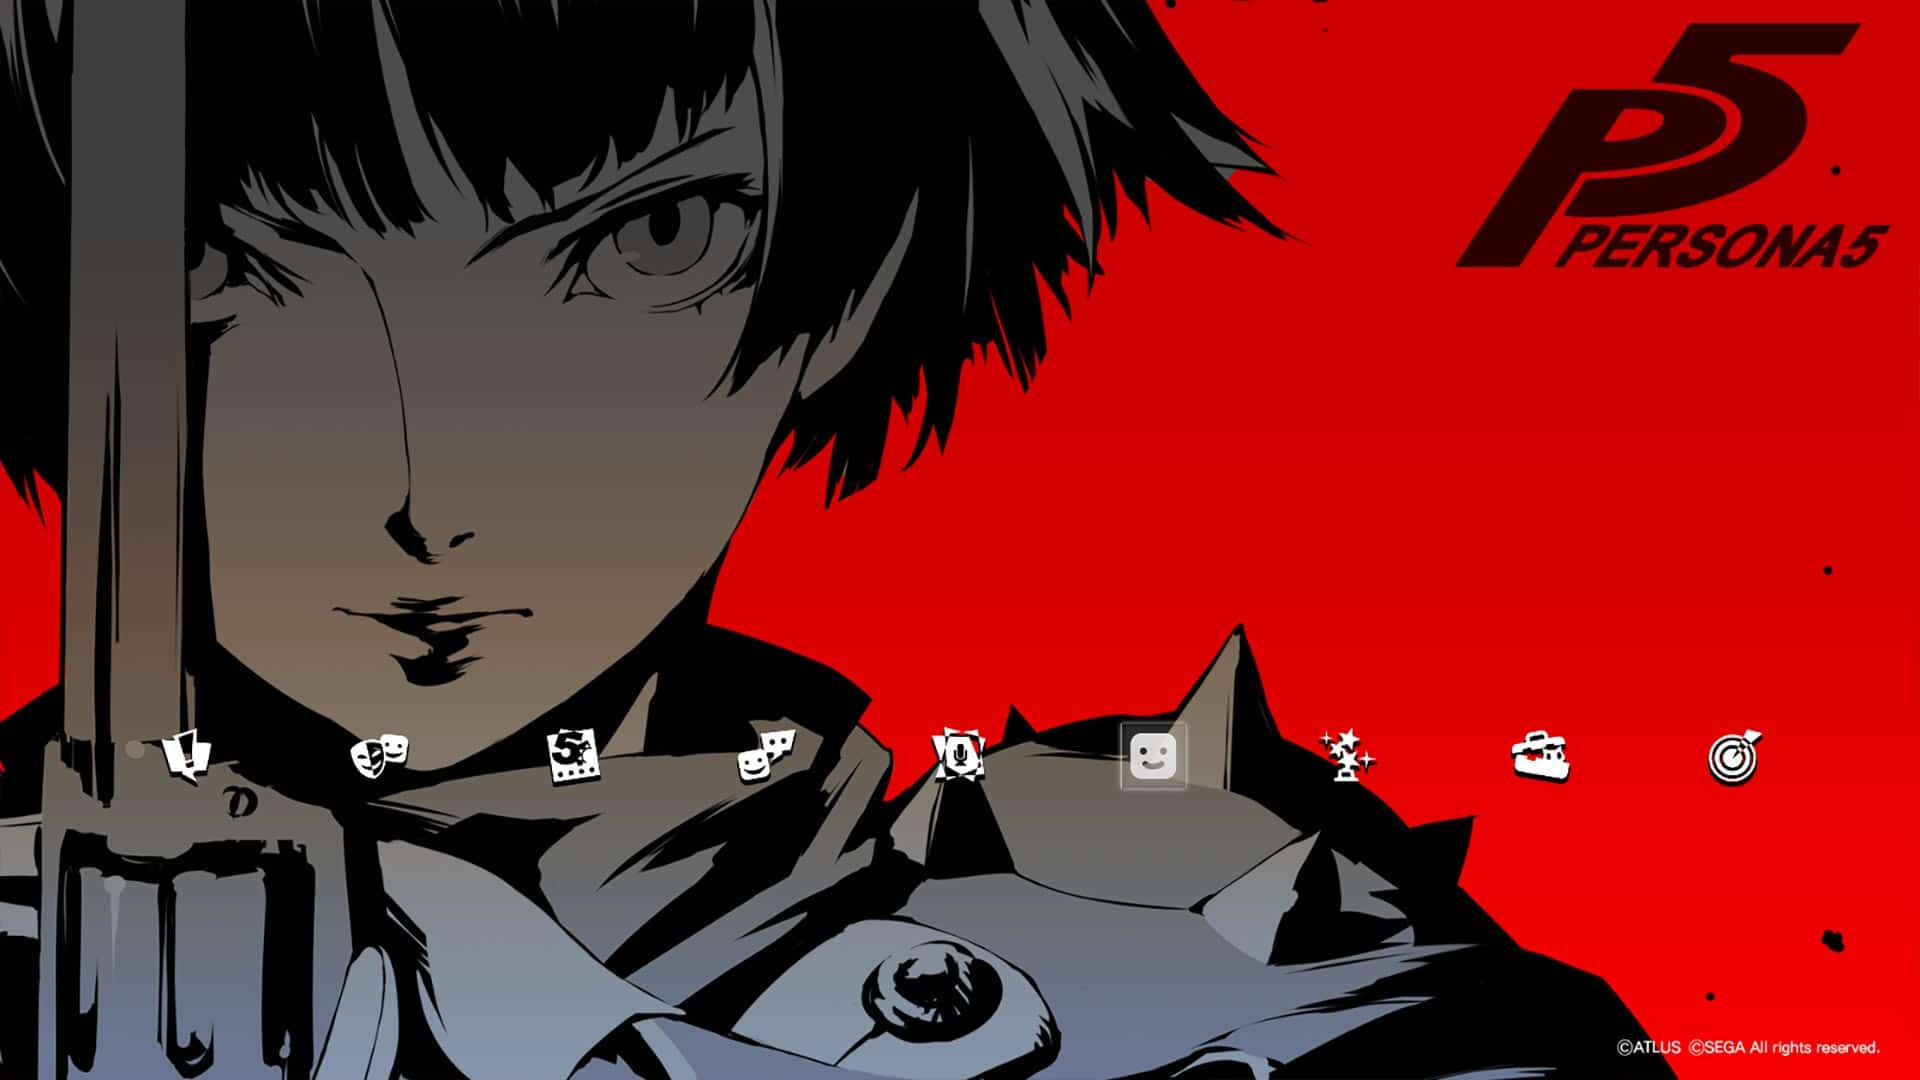 New Persona 5 Character Themes and Avatars Released on